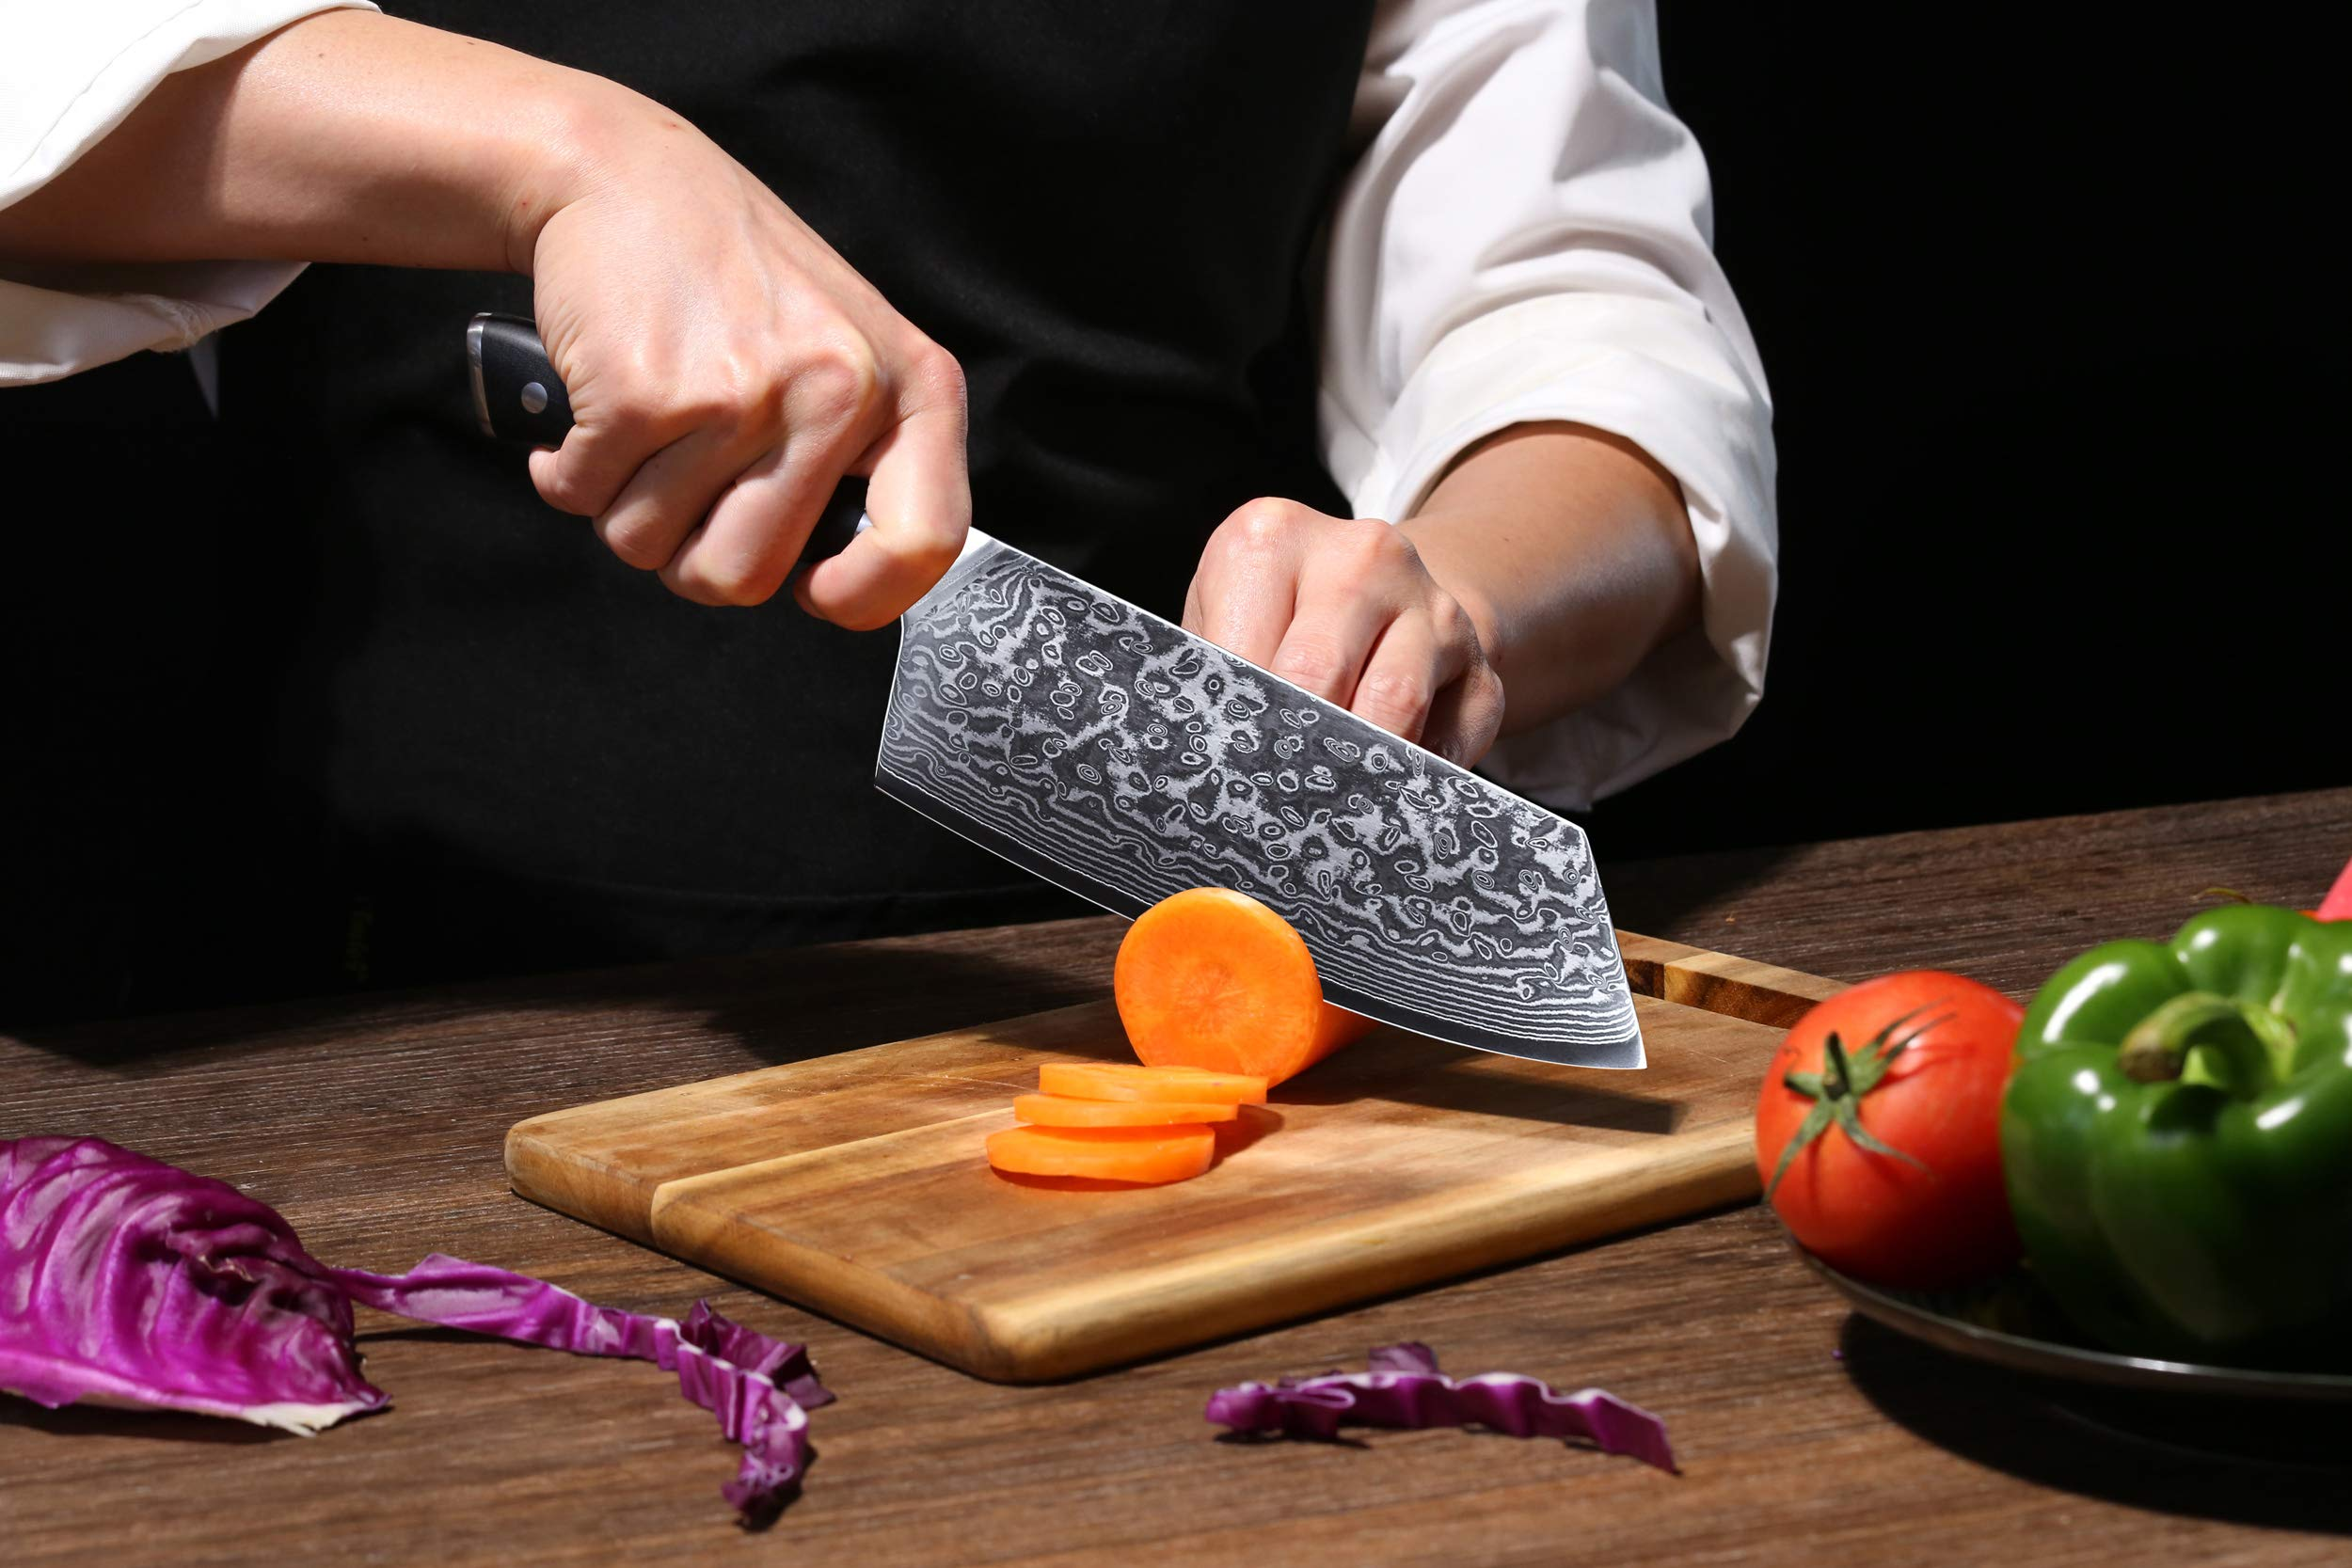 TURWHO Cleaver Knife - Japanese VG-10 Damascus Steel - Chinese Chef's Knife for meat and vegetable with Ergonomic G10 Handle - 7.5'' by TURWHO (Image #7)